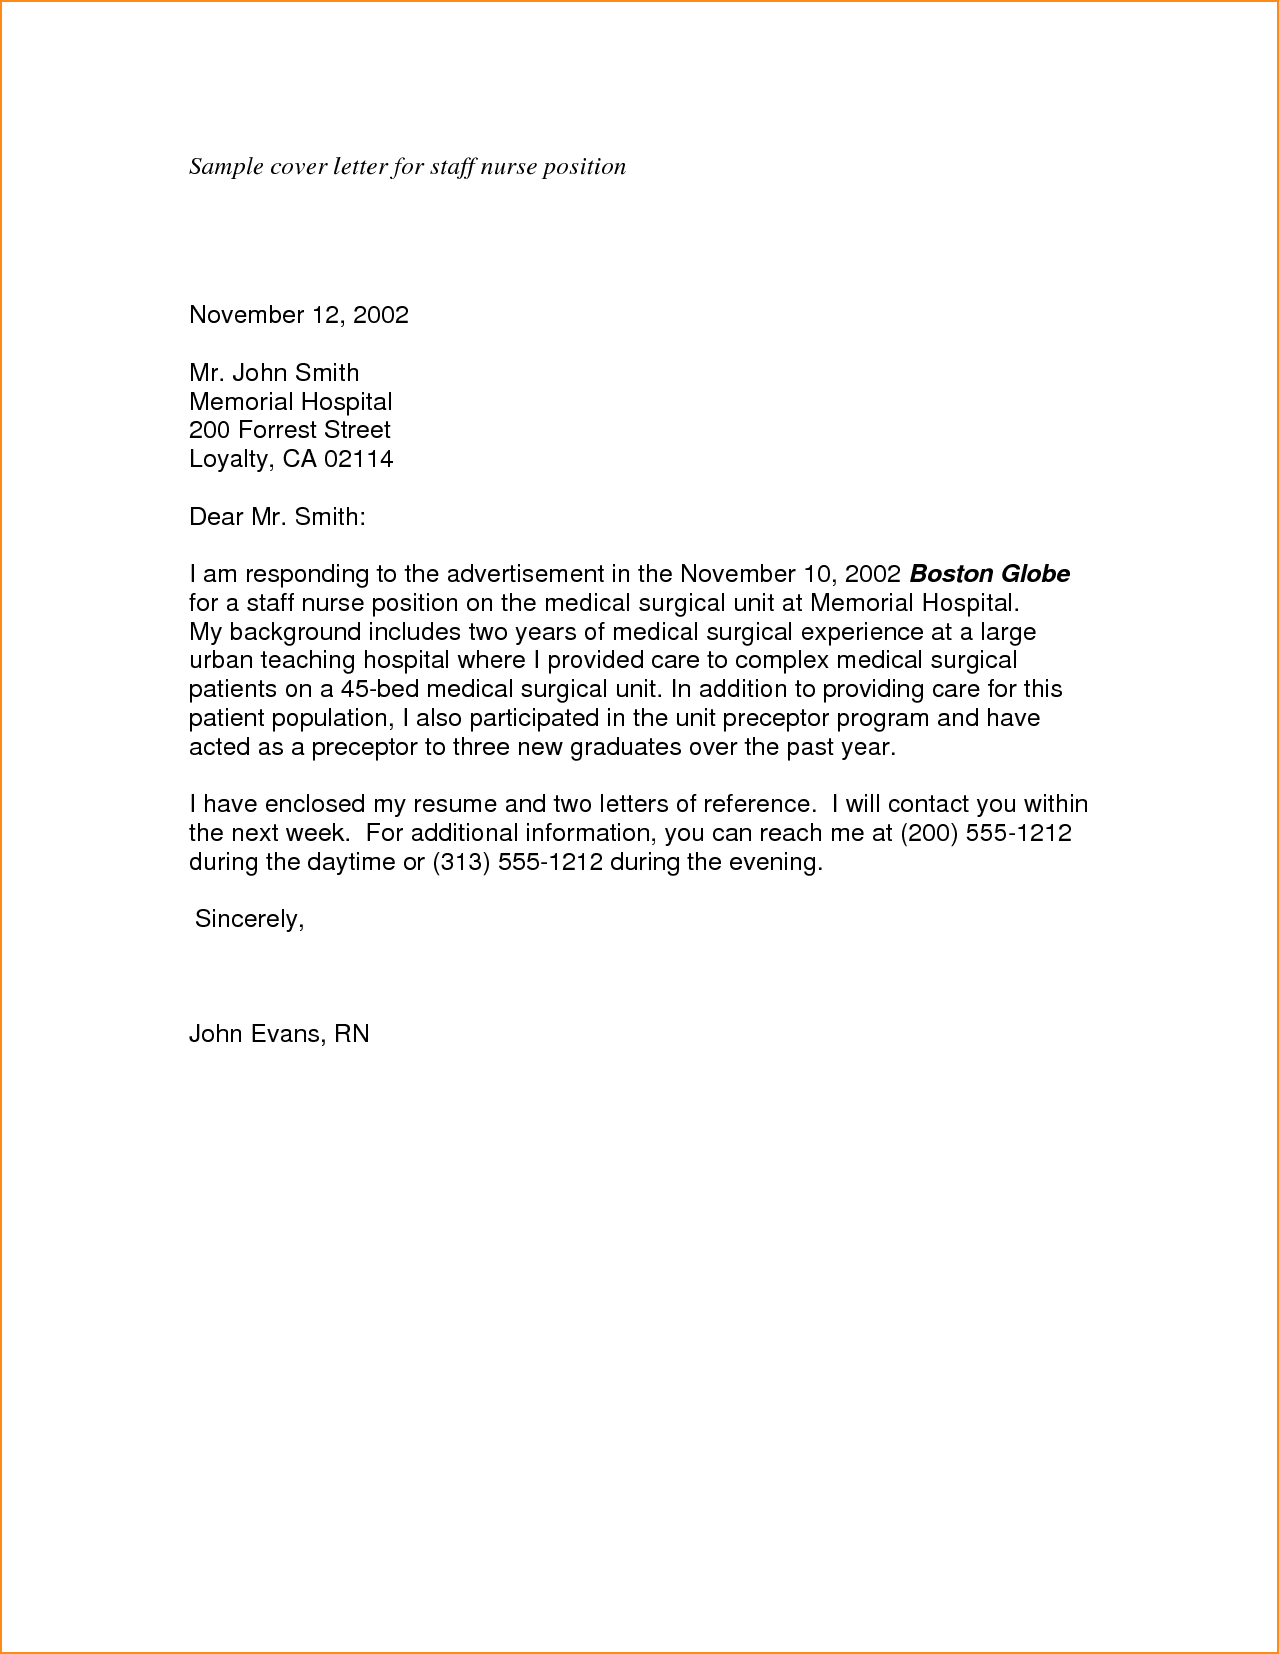 General Cover Letter For Resume Sample Cover Letter For Staff Nurse Position Job Wining Samples